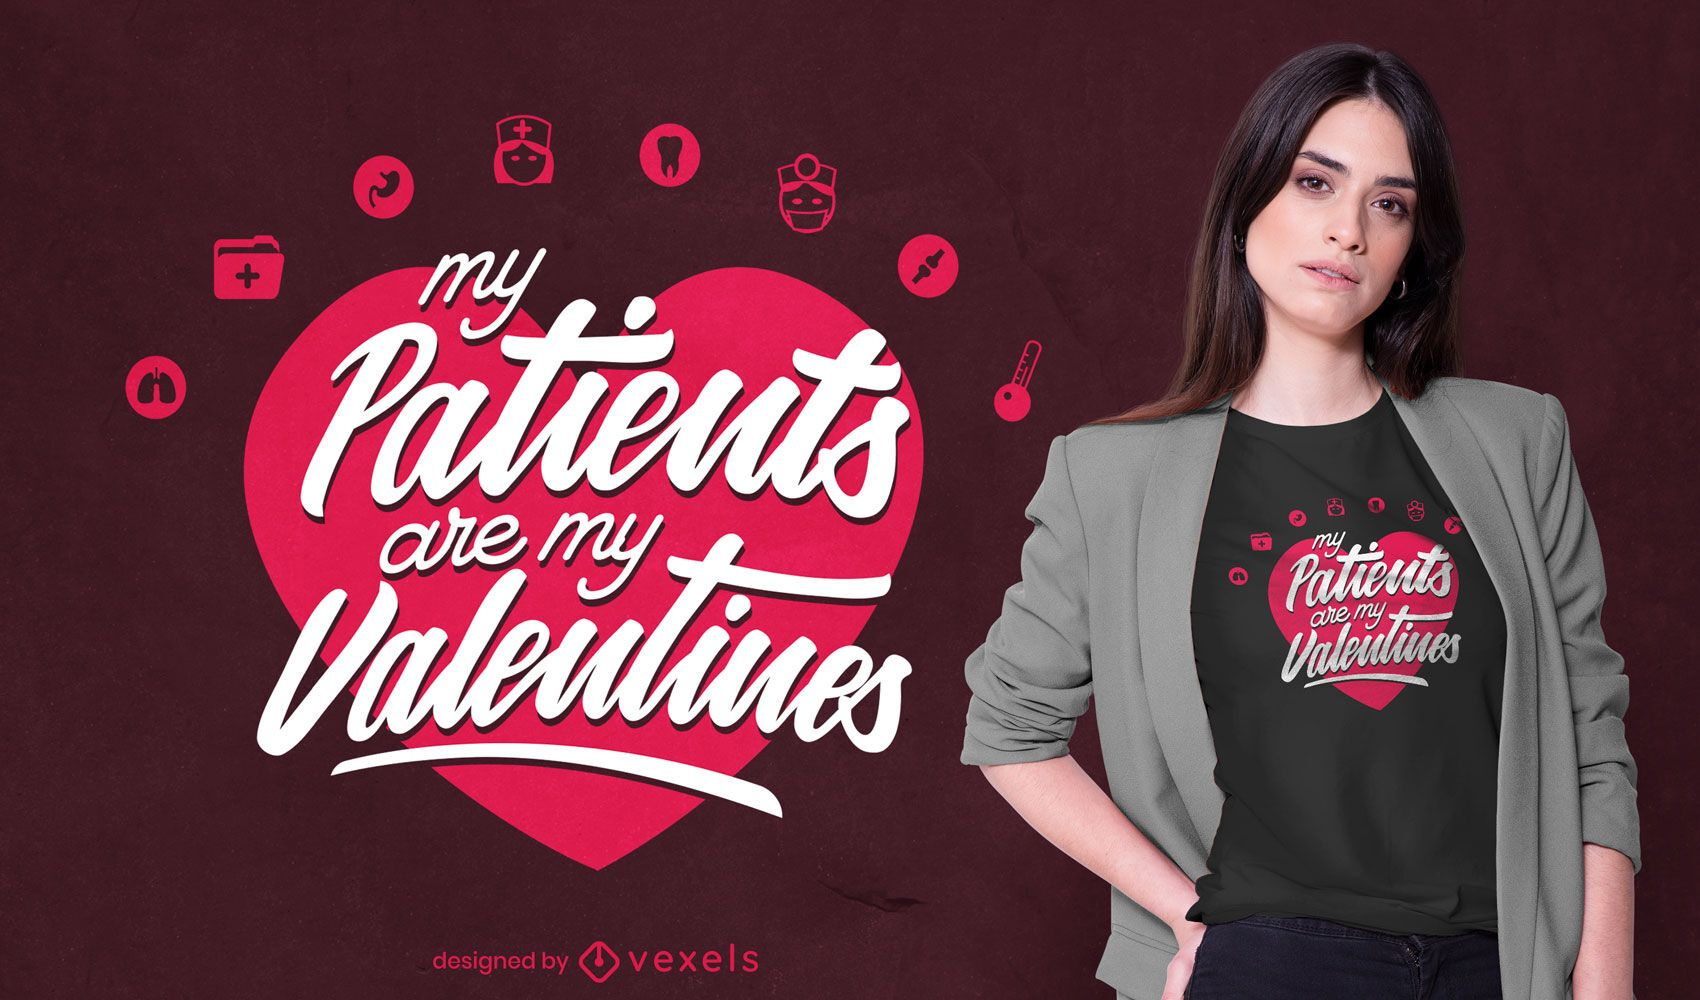 Patients are my valentines t-shirt design